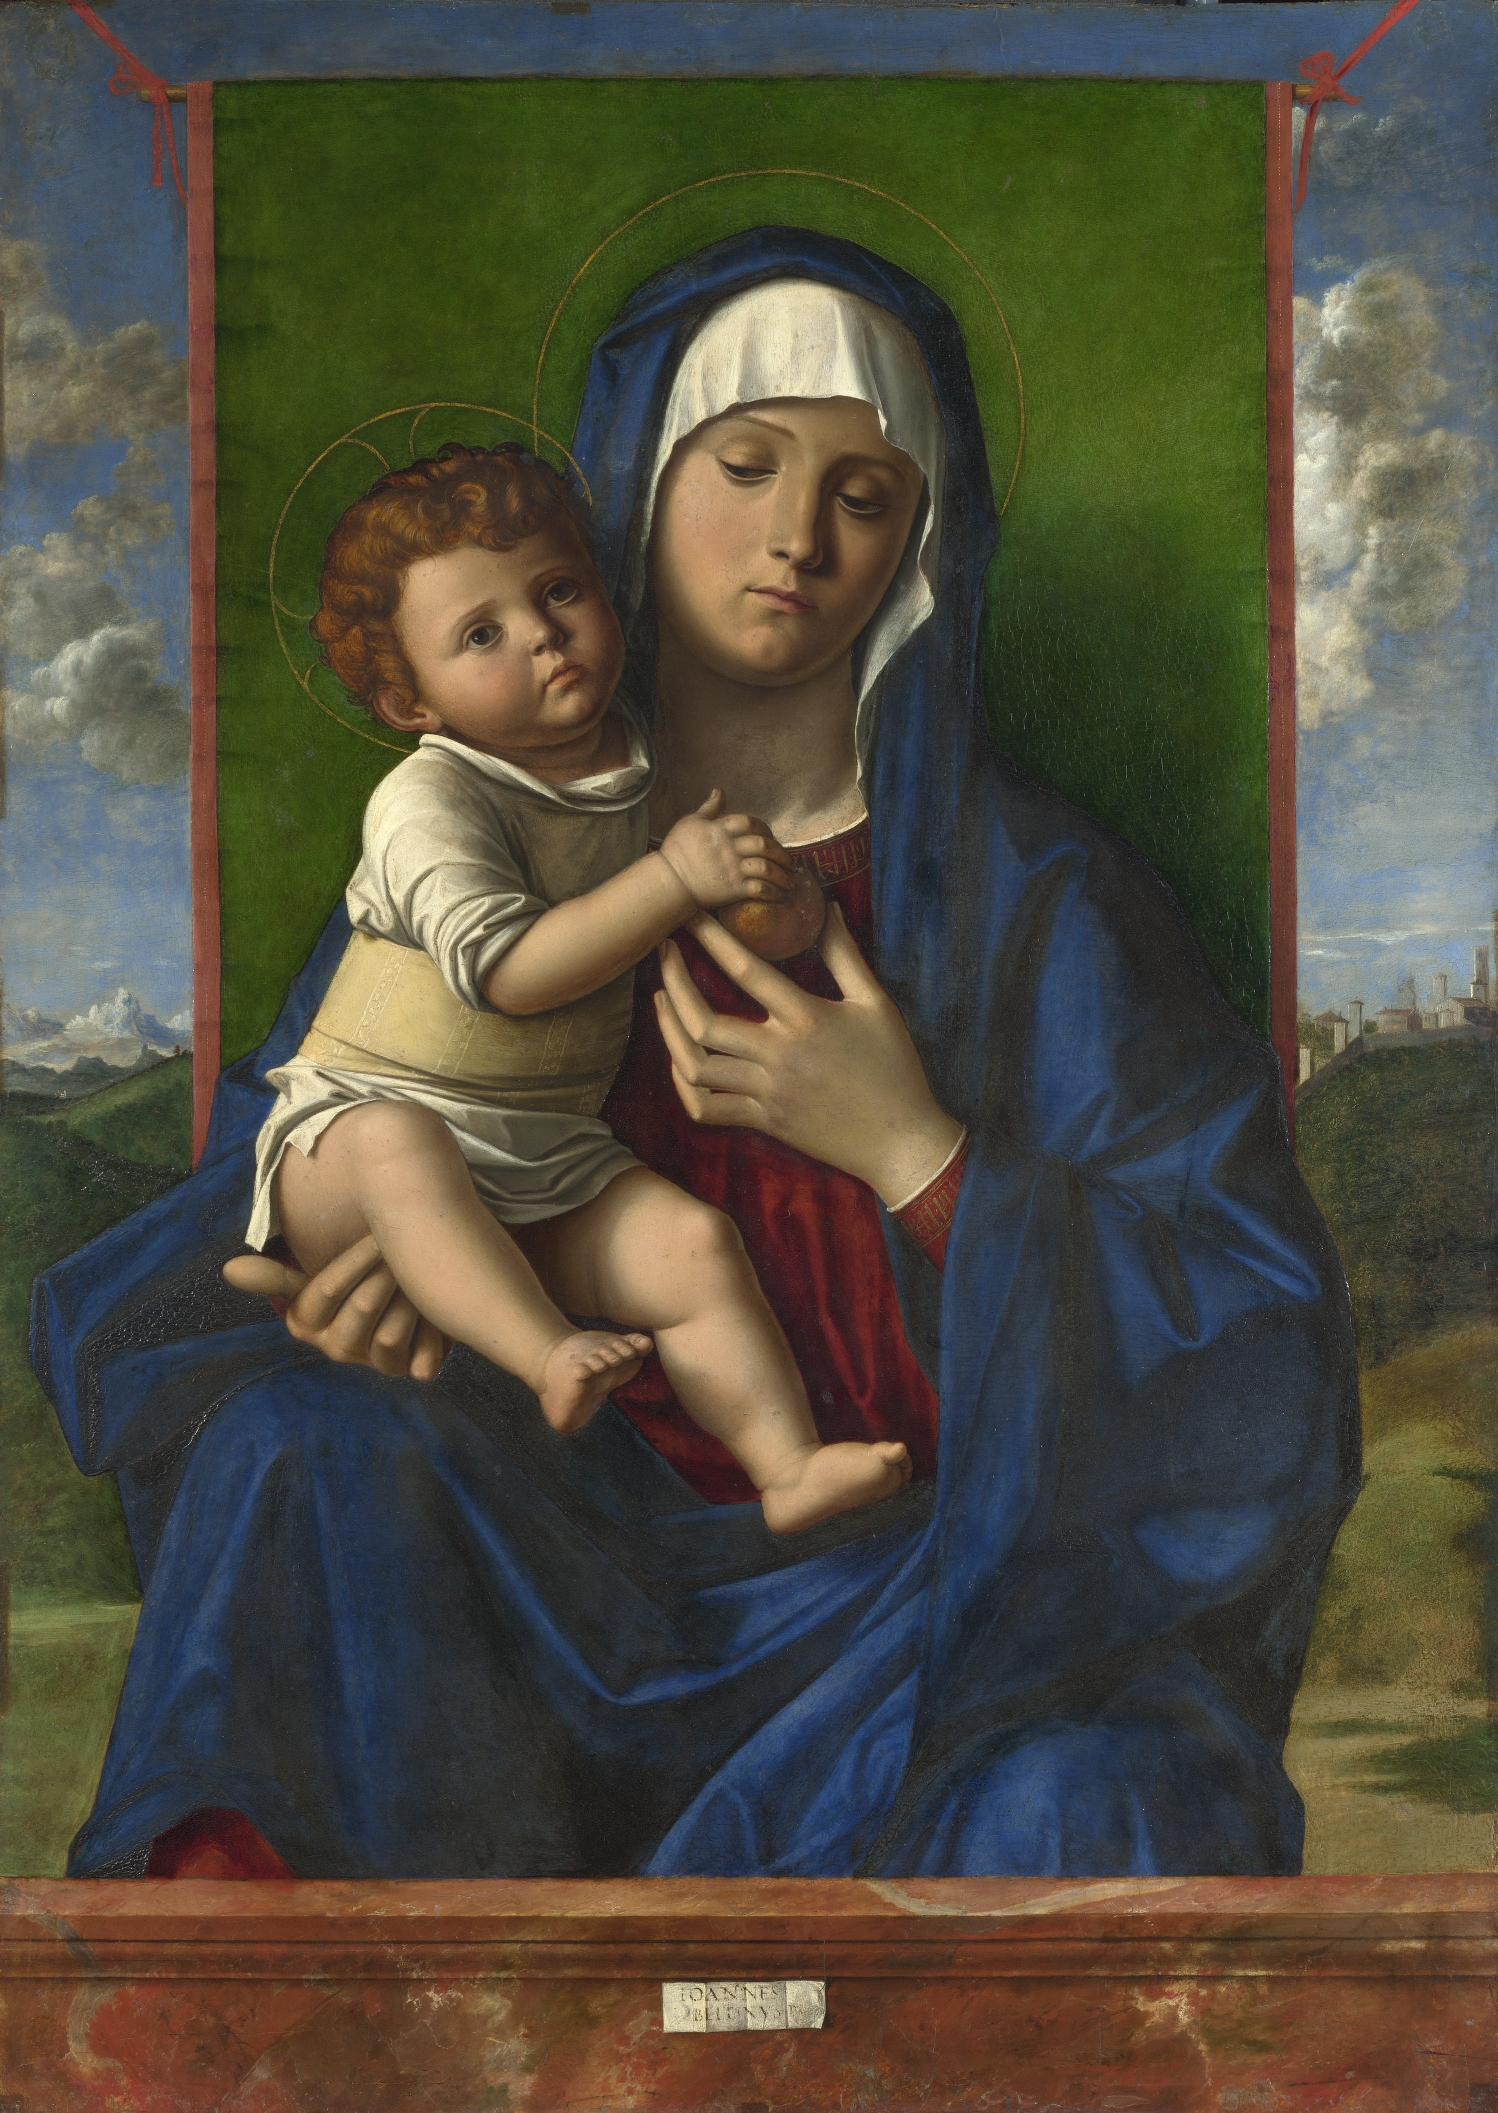 HAYDN, J.M. - Giovanni Bellini - The Virgin and Child